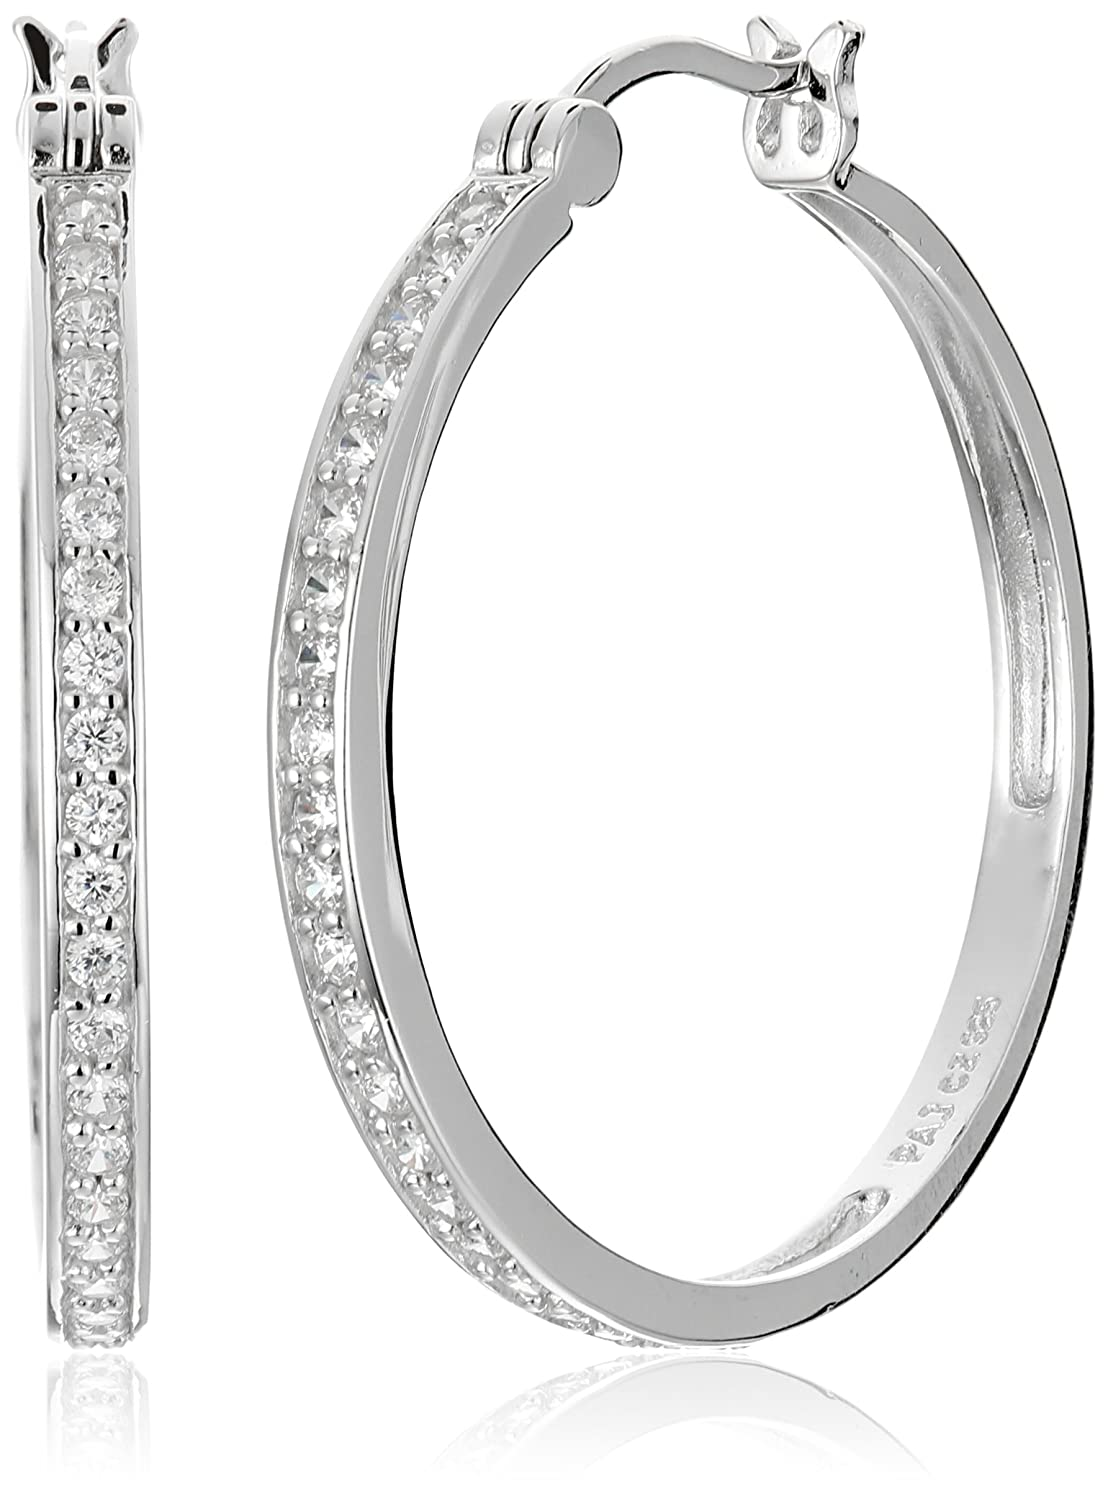 Sterling Silver Cubic Zirconia Hoop Earrings (1.2 Diameter) Amazon Collection R2A51D000K